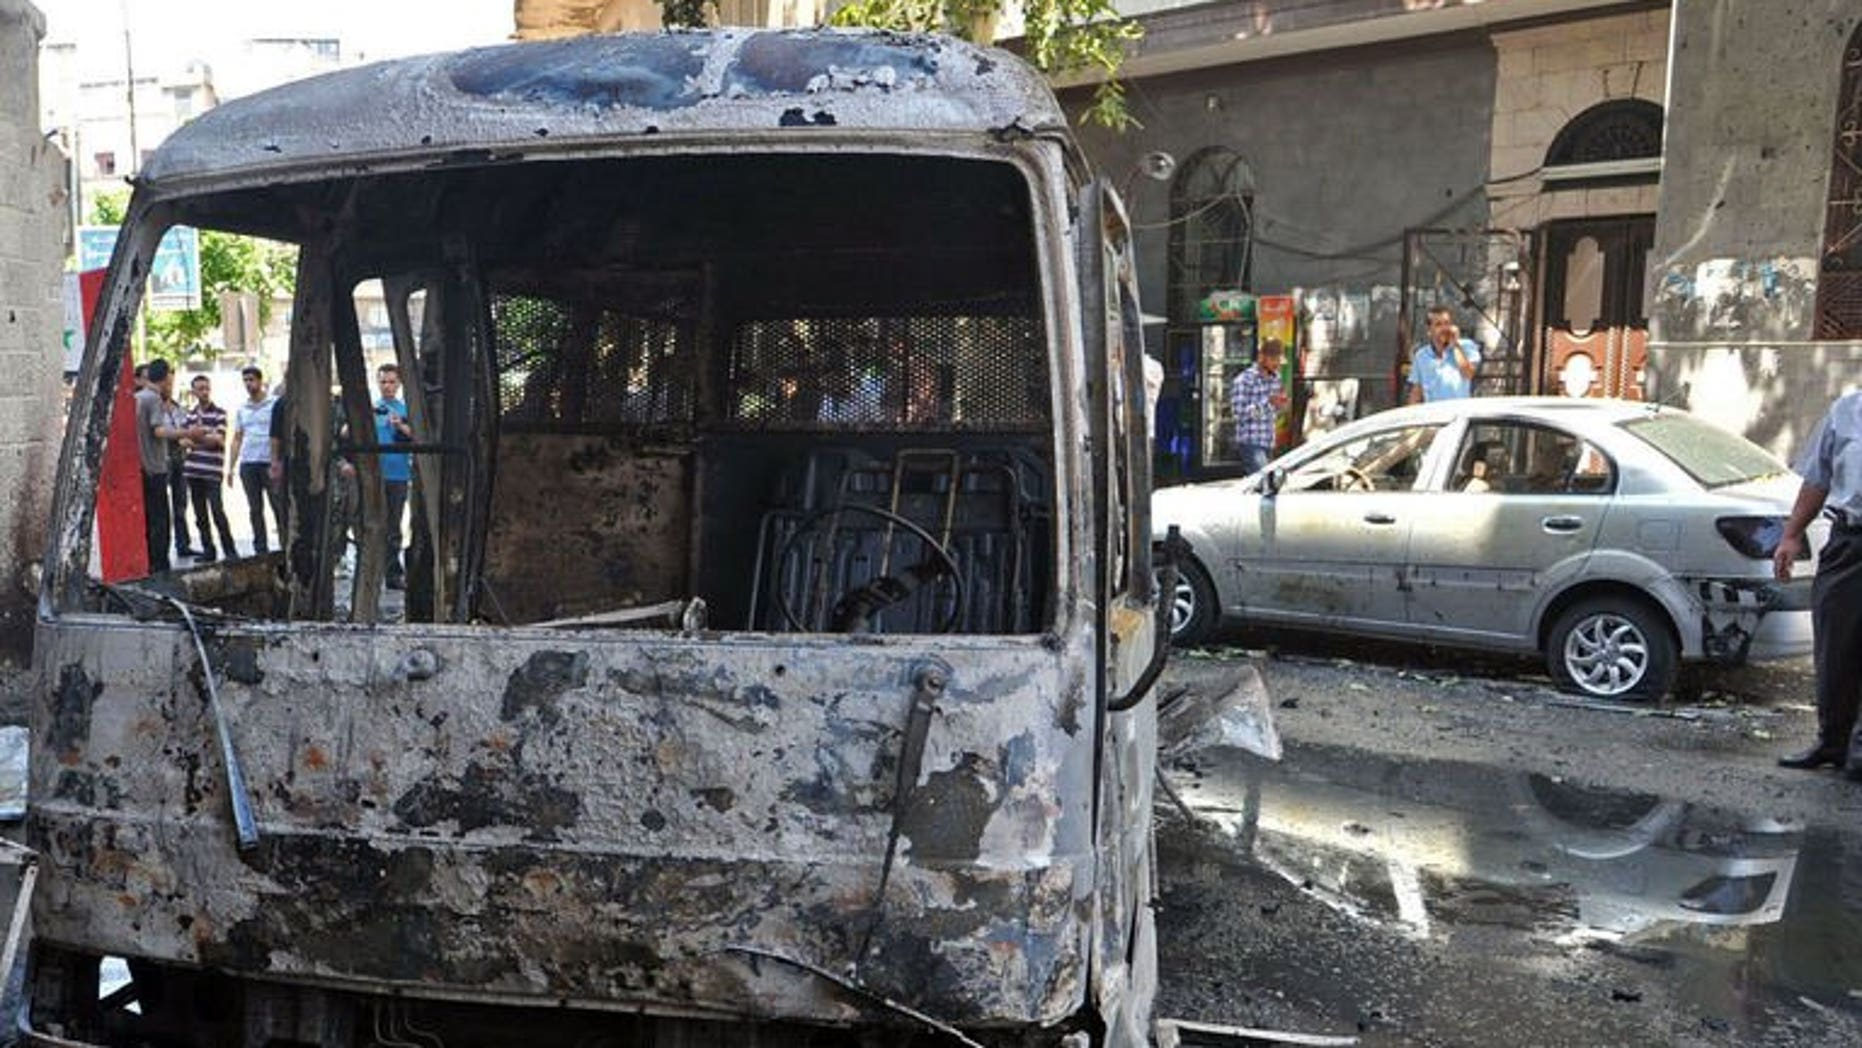 A handout picture released by the Syrian Arab News Agency (SANA) on June 23, 2013, shows civilians inspecting burnt out vehicles following an attack in the capital Damascus.